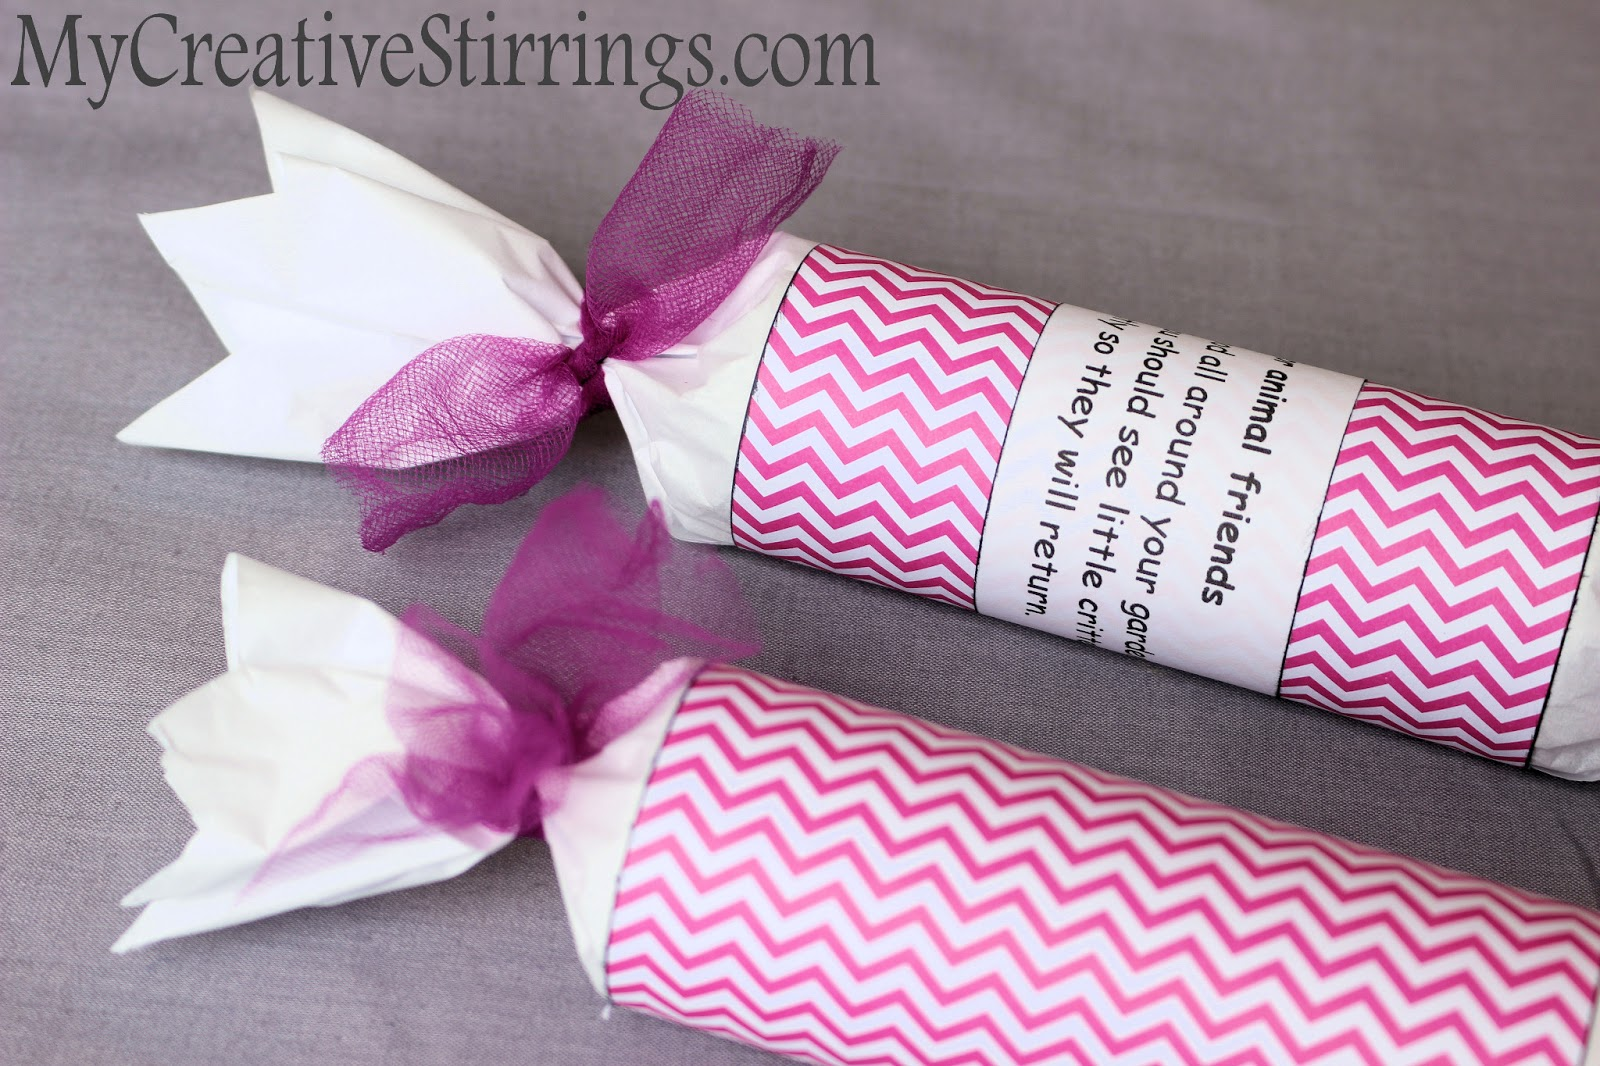 My Creative Stirrings: Flower Party- Party Favor